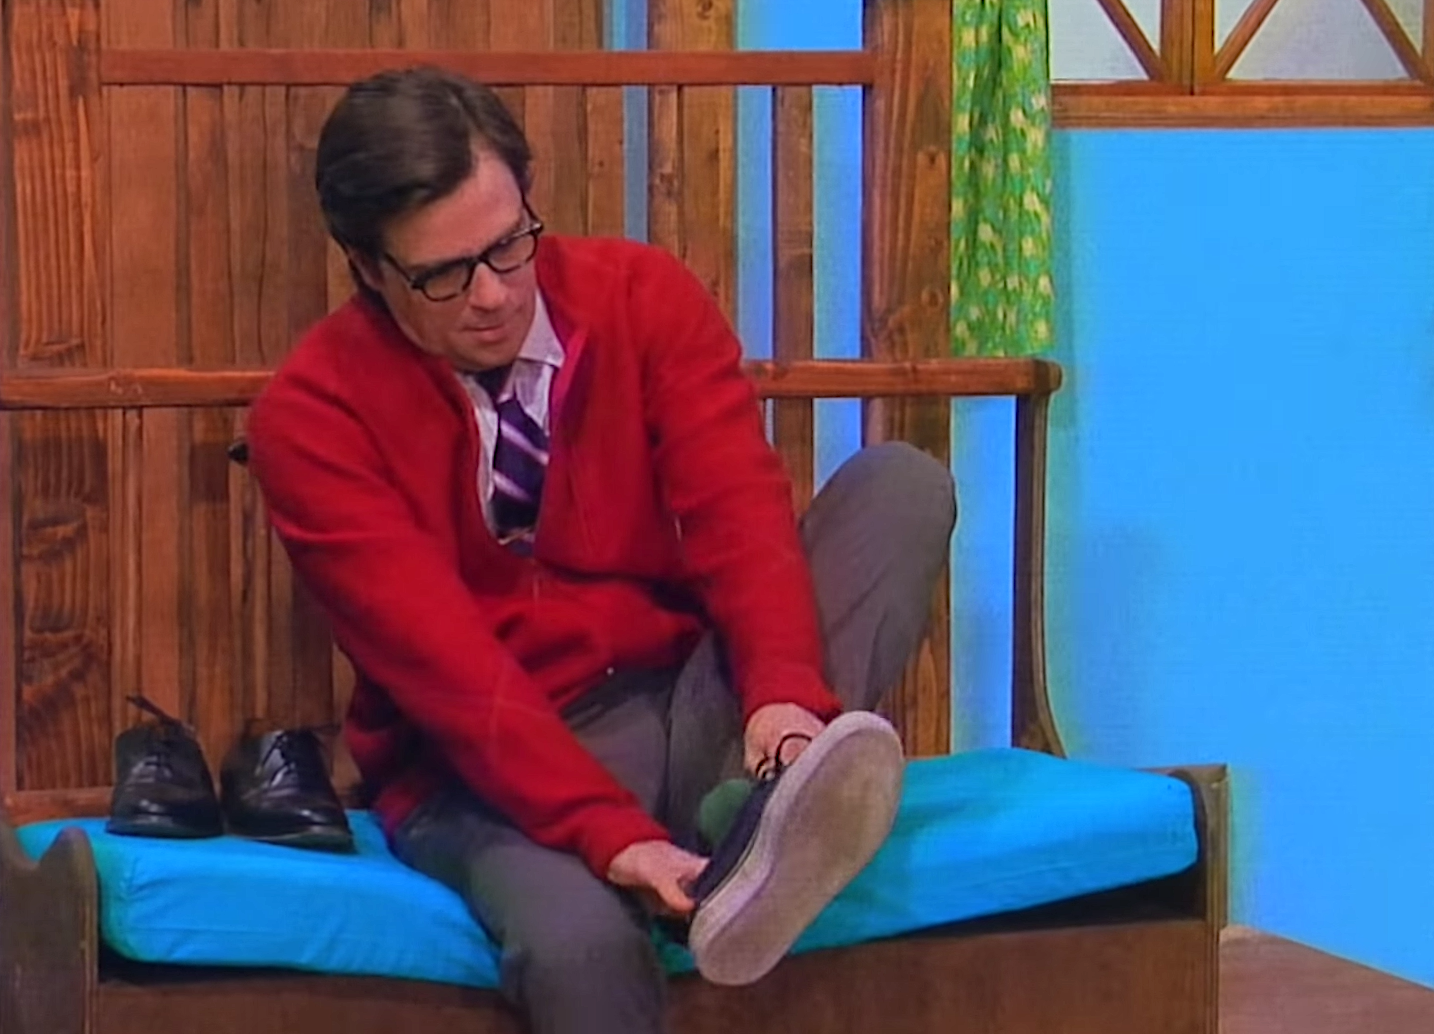 Rivers Cuomo Is An Eerie Mister Rogers In The Music Video For The New Weezer Song High As A Kite Weezer Rivers Cuomo Mr Rogers